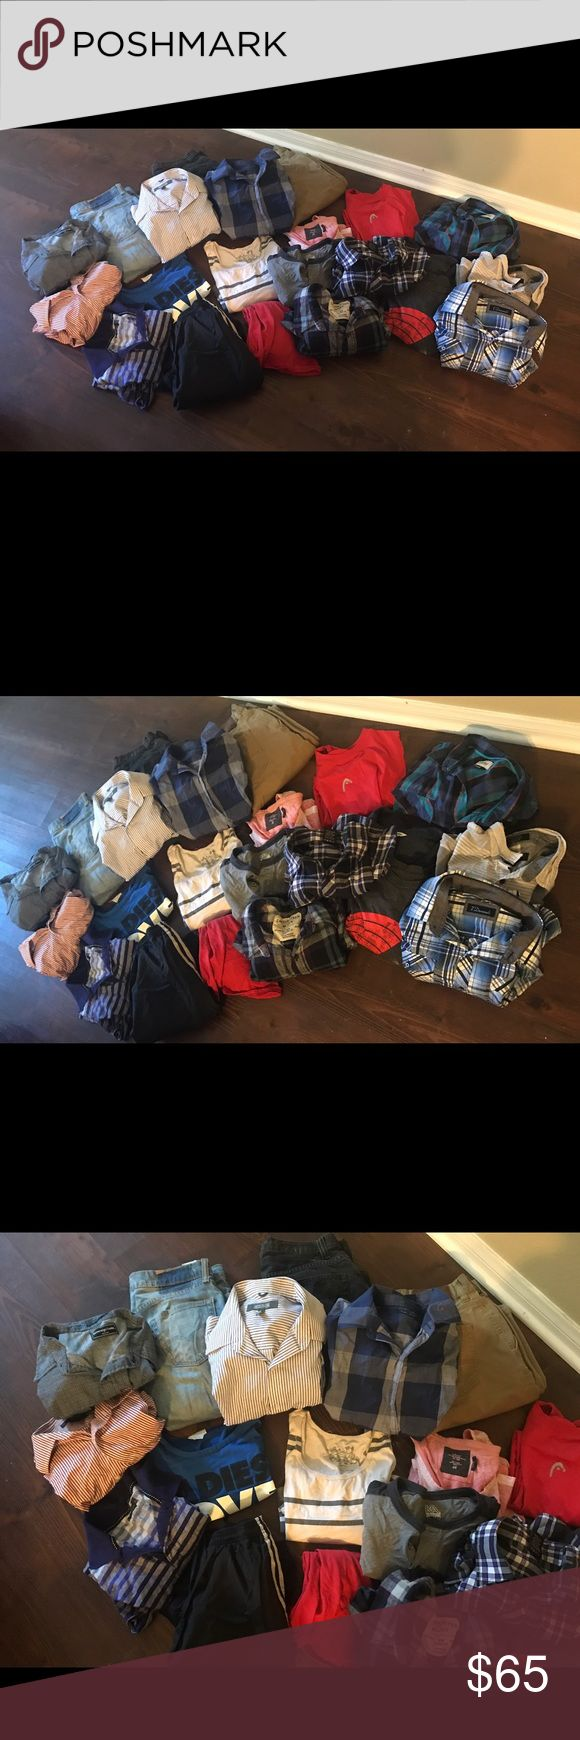 Huge Men's lot of clothes wth different brands! This is a huge bundle for men that includes 24 items! 3 jeans Levi's,w 29 L 30, converse jeans 32 x 30, and quick sliver 30. Bundle also includes Adidas shorts , swim shorts , work out tanks. Dress polos (Calvin Klein), dress shirts (express) long sleeve and short sleeve, and tank tops. Sizes vary from S - L Shirts